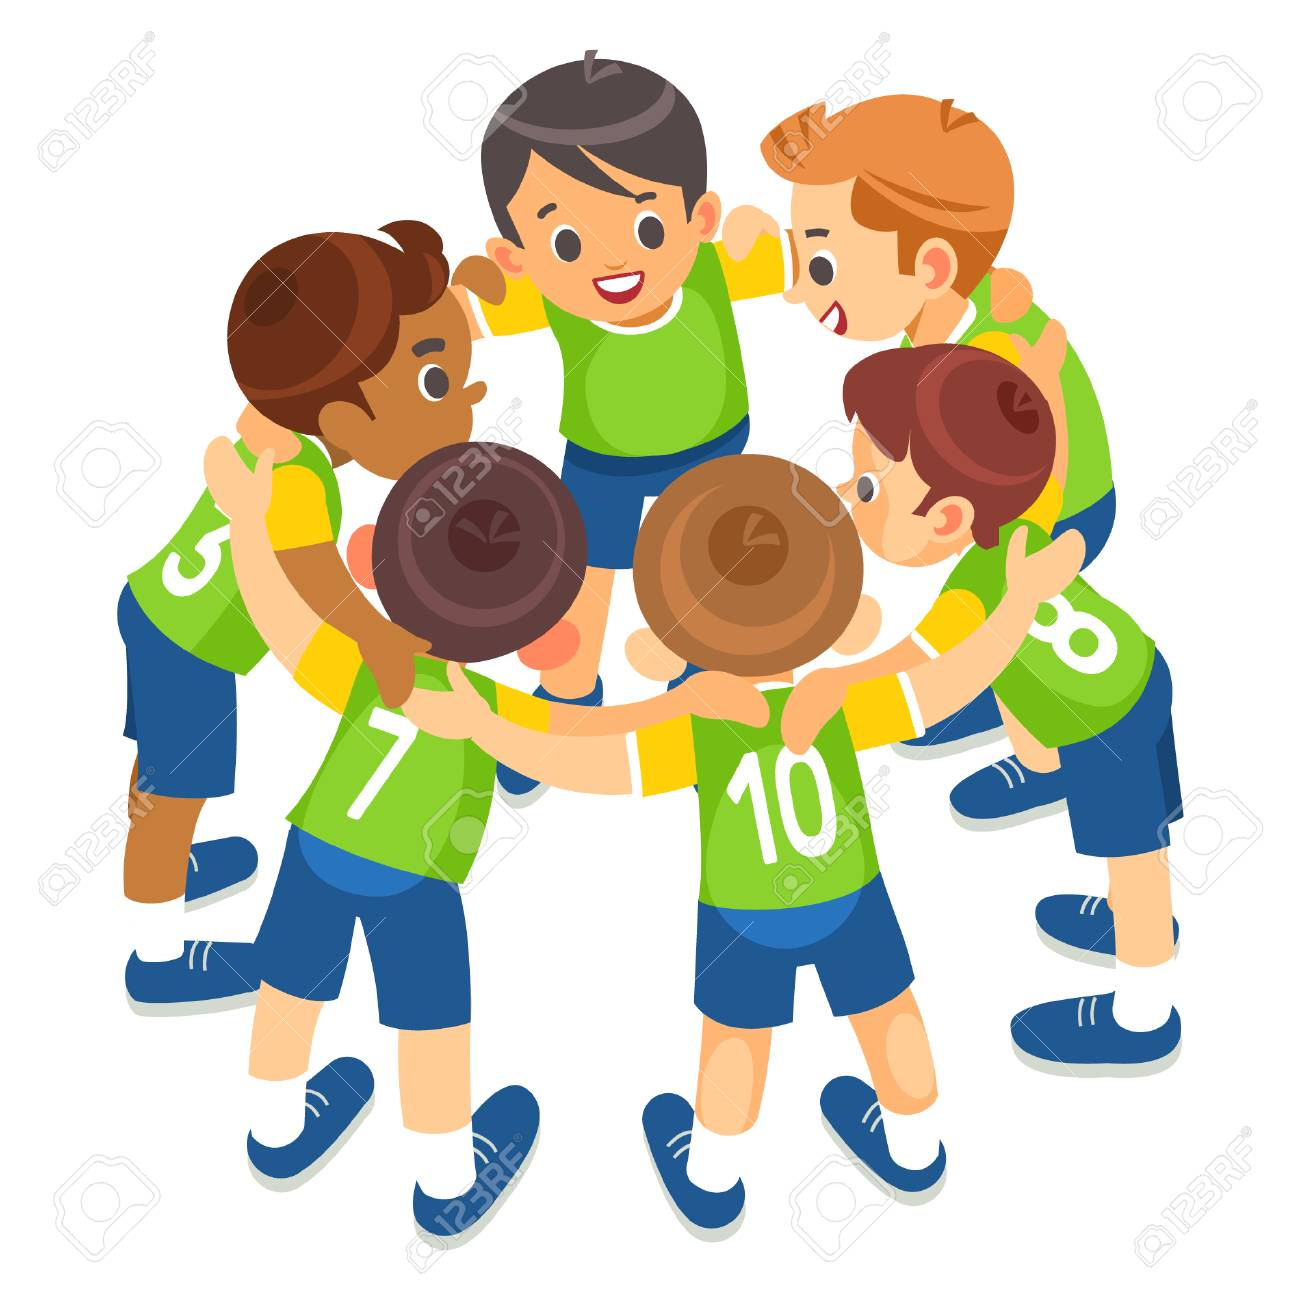 Kids Play Sports Children Sports Team United Ready To Play Game Royalty Free Cliparts Vectors And Stock Illustration Image 126626952